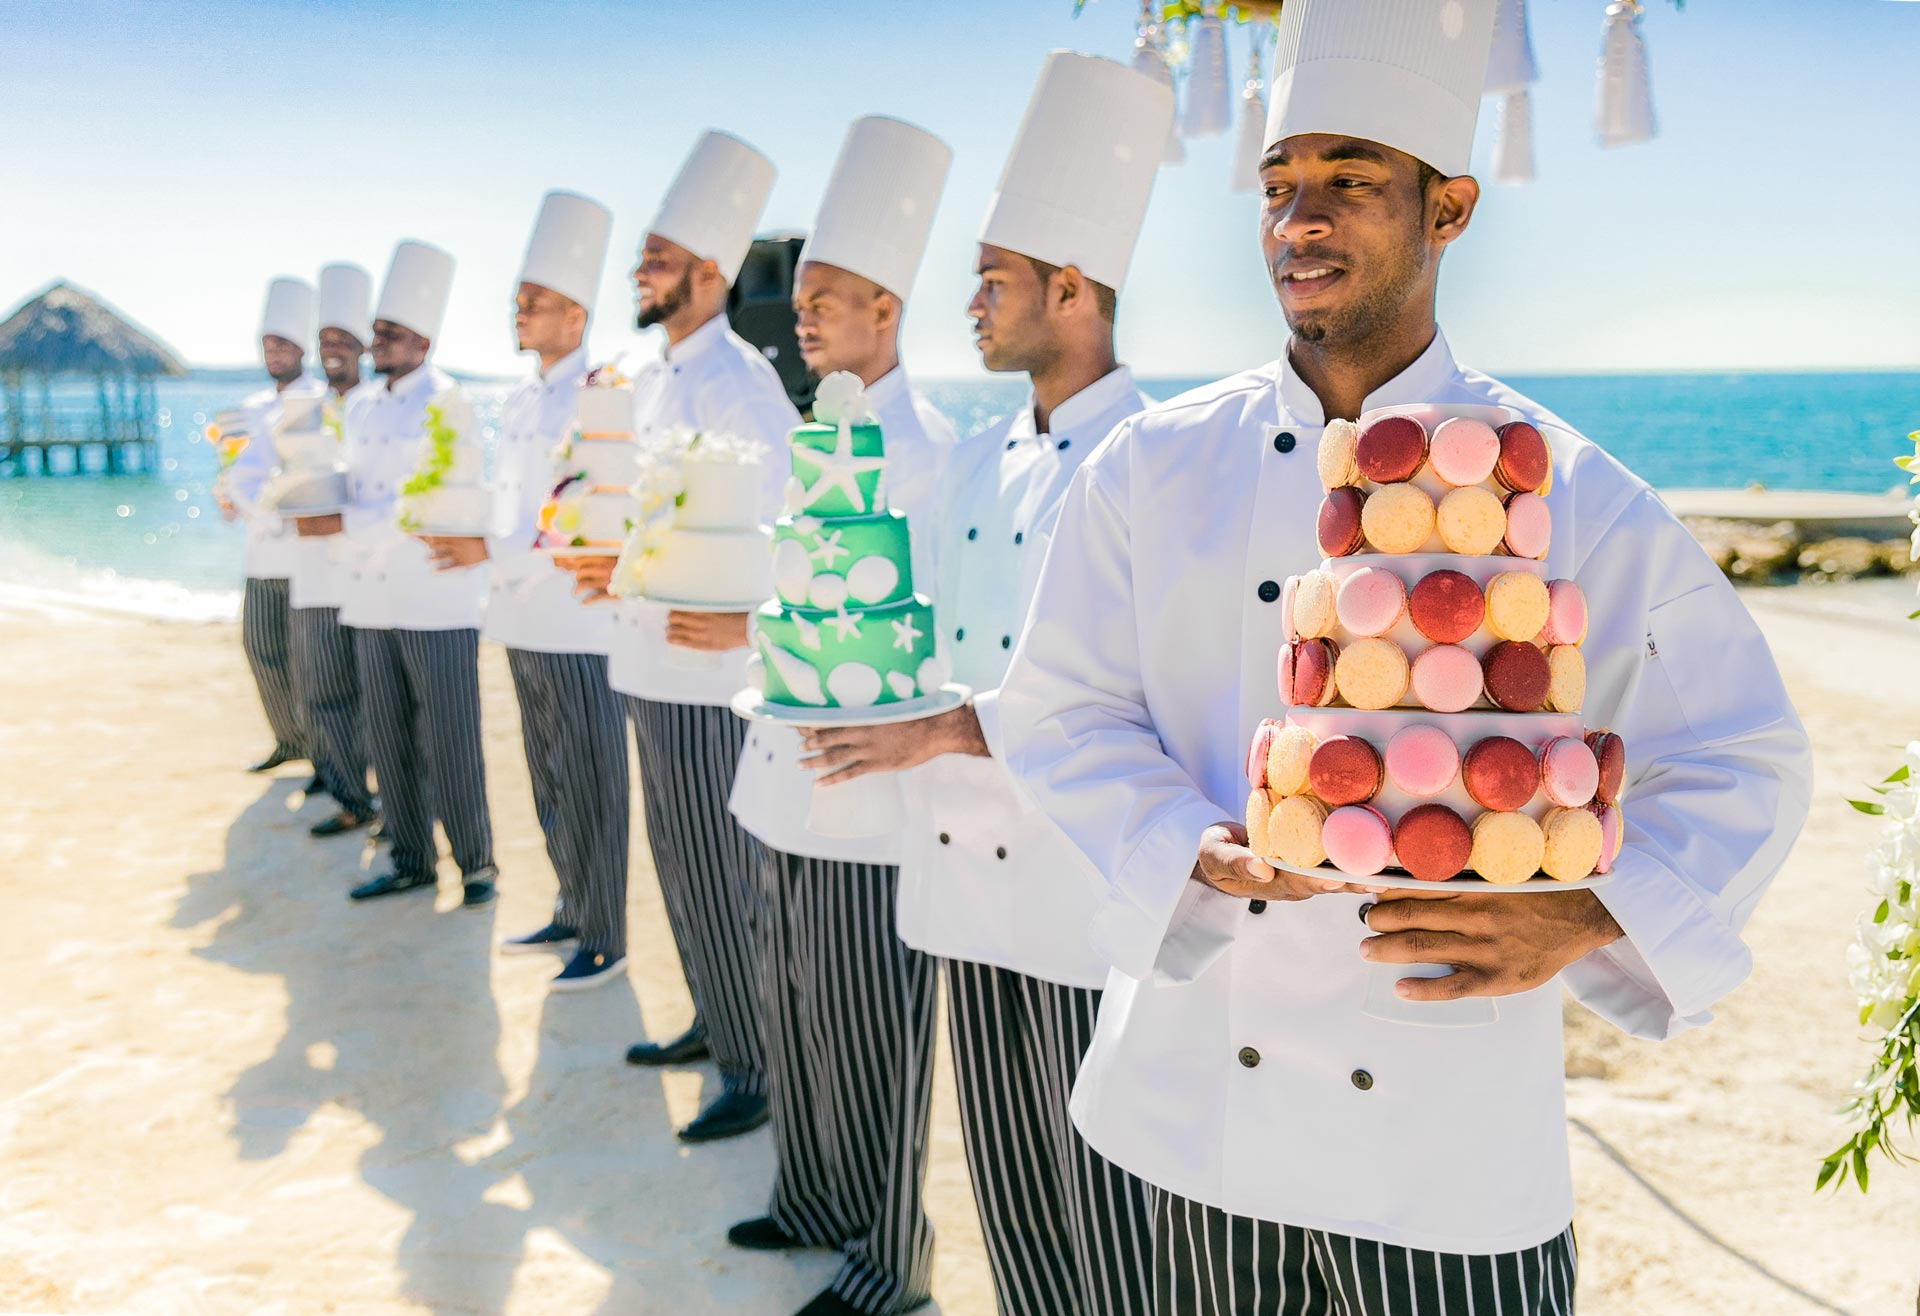 Row of chefs with cakes